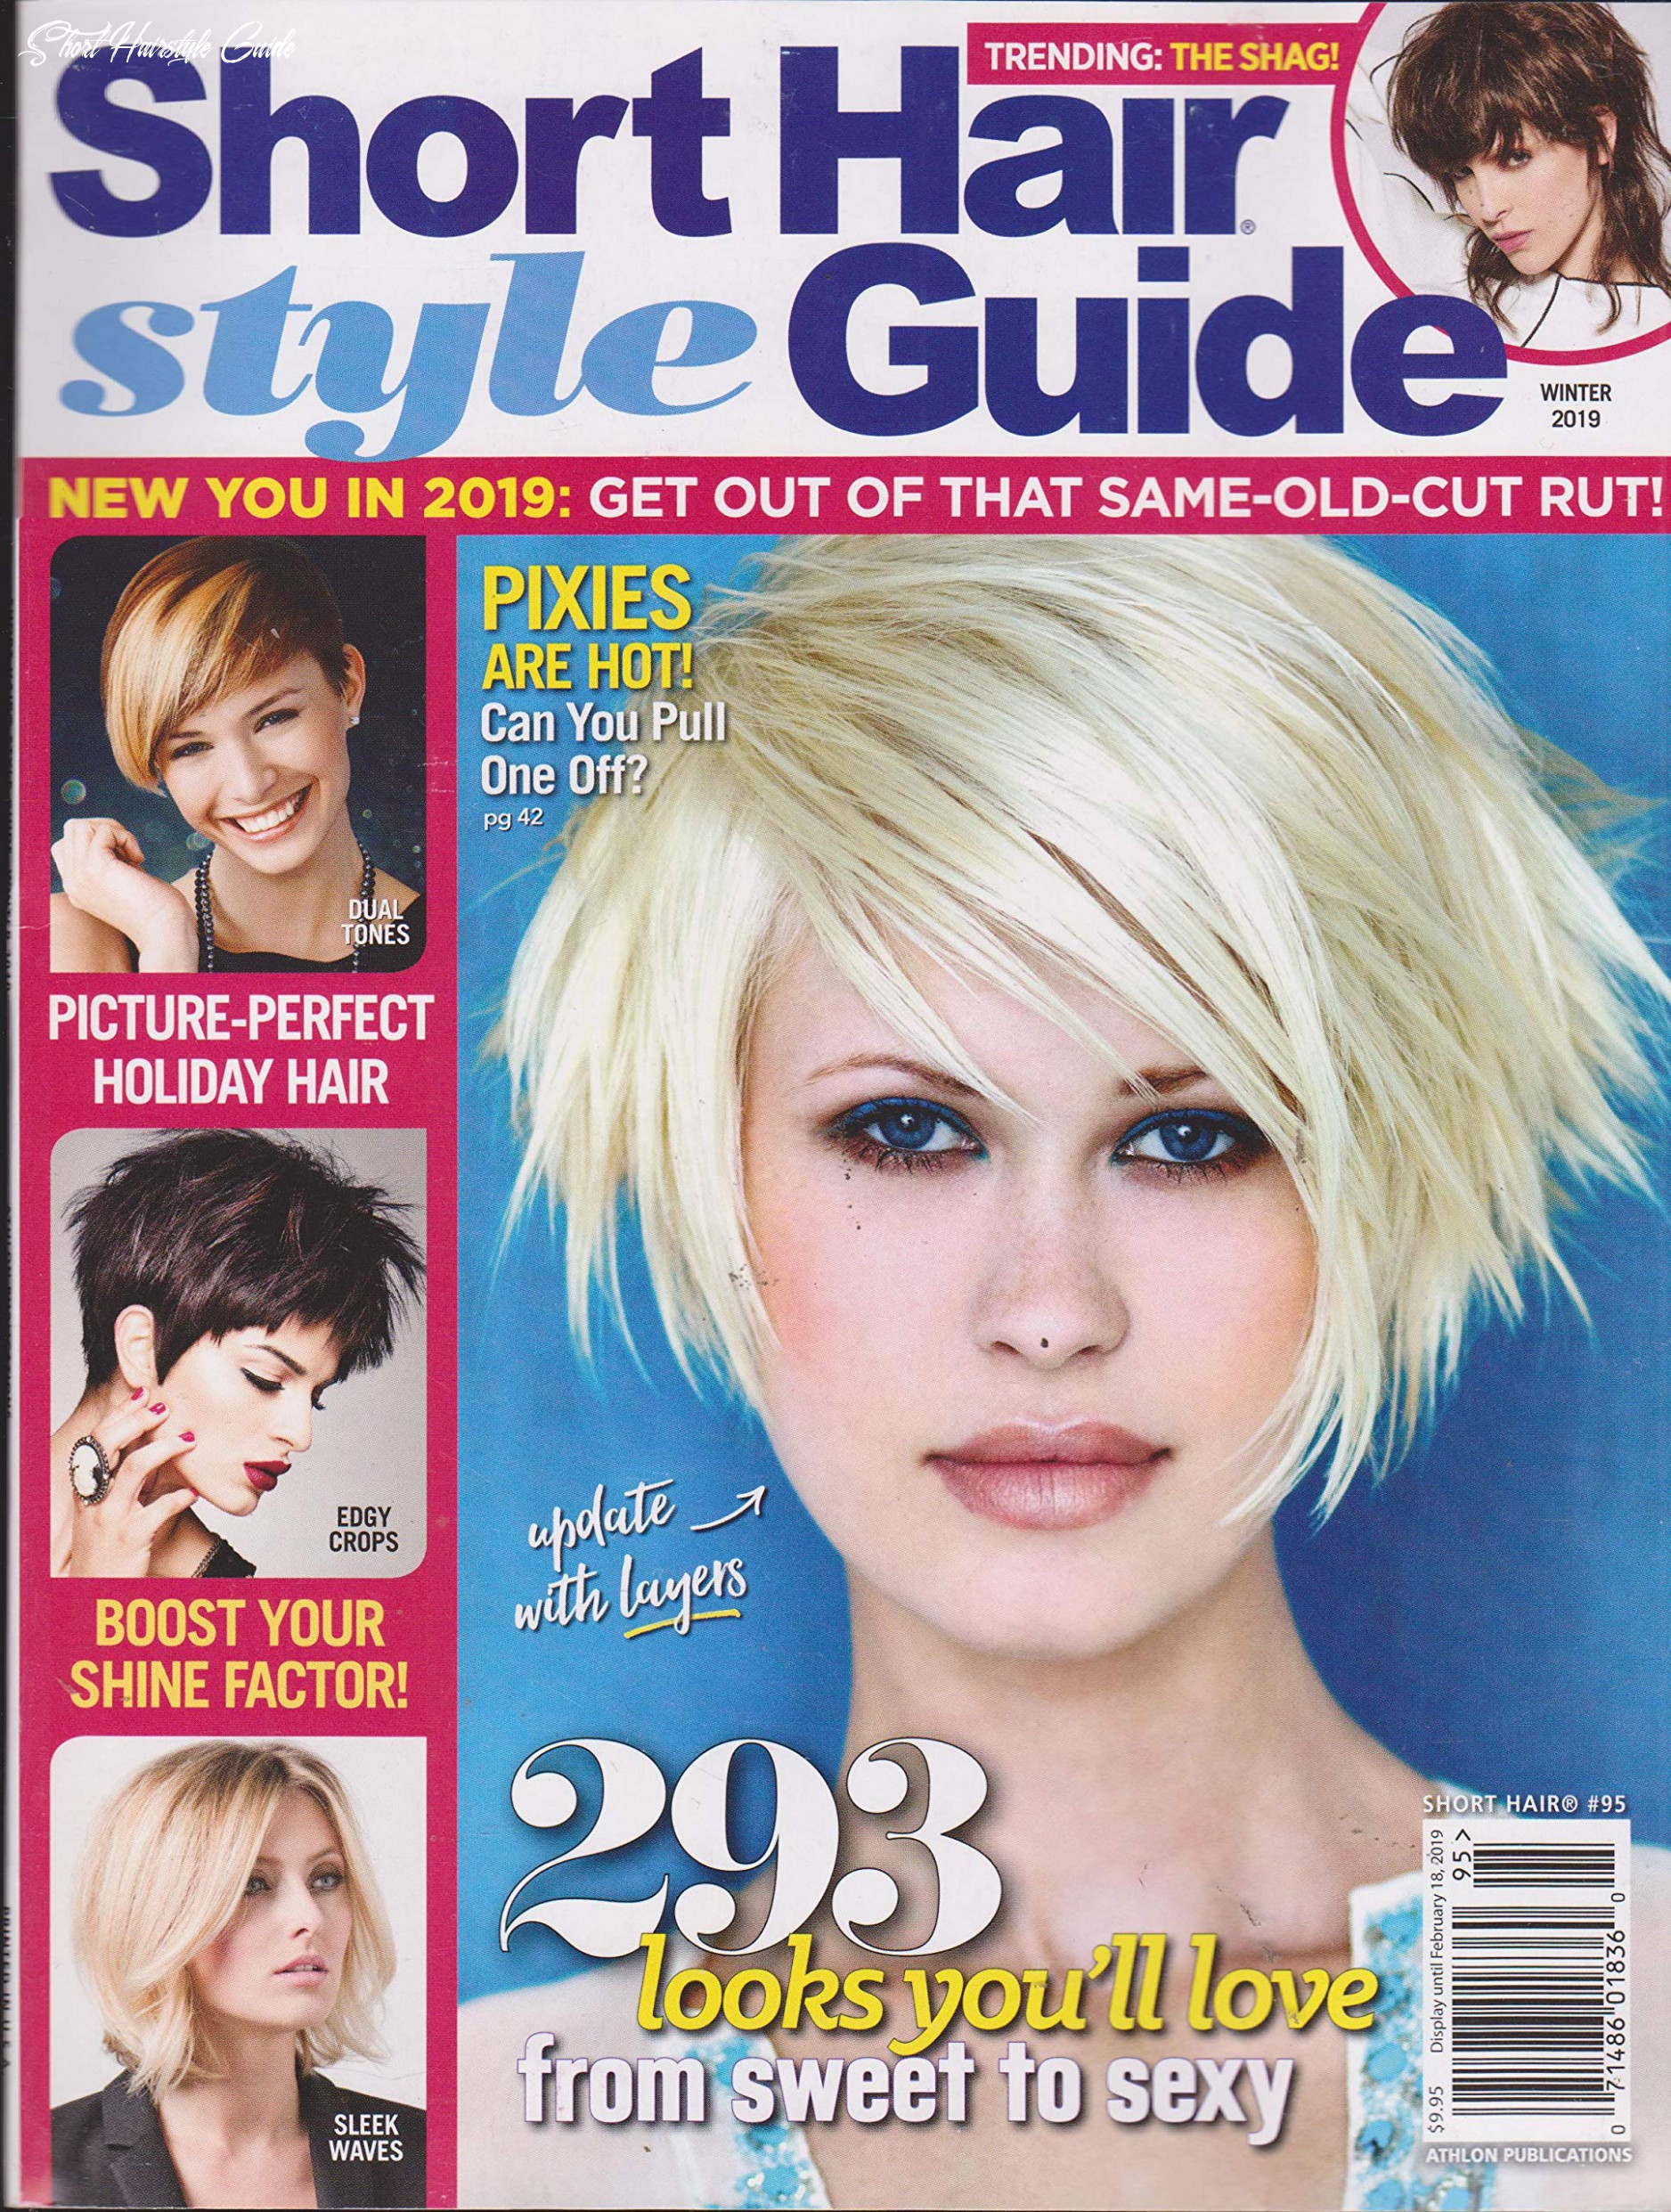 Short hair style guide magazine winter 8: amazon